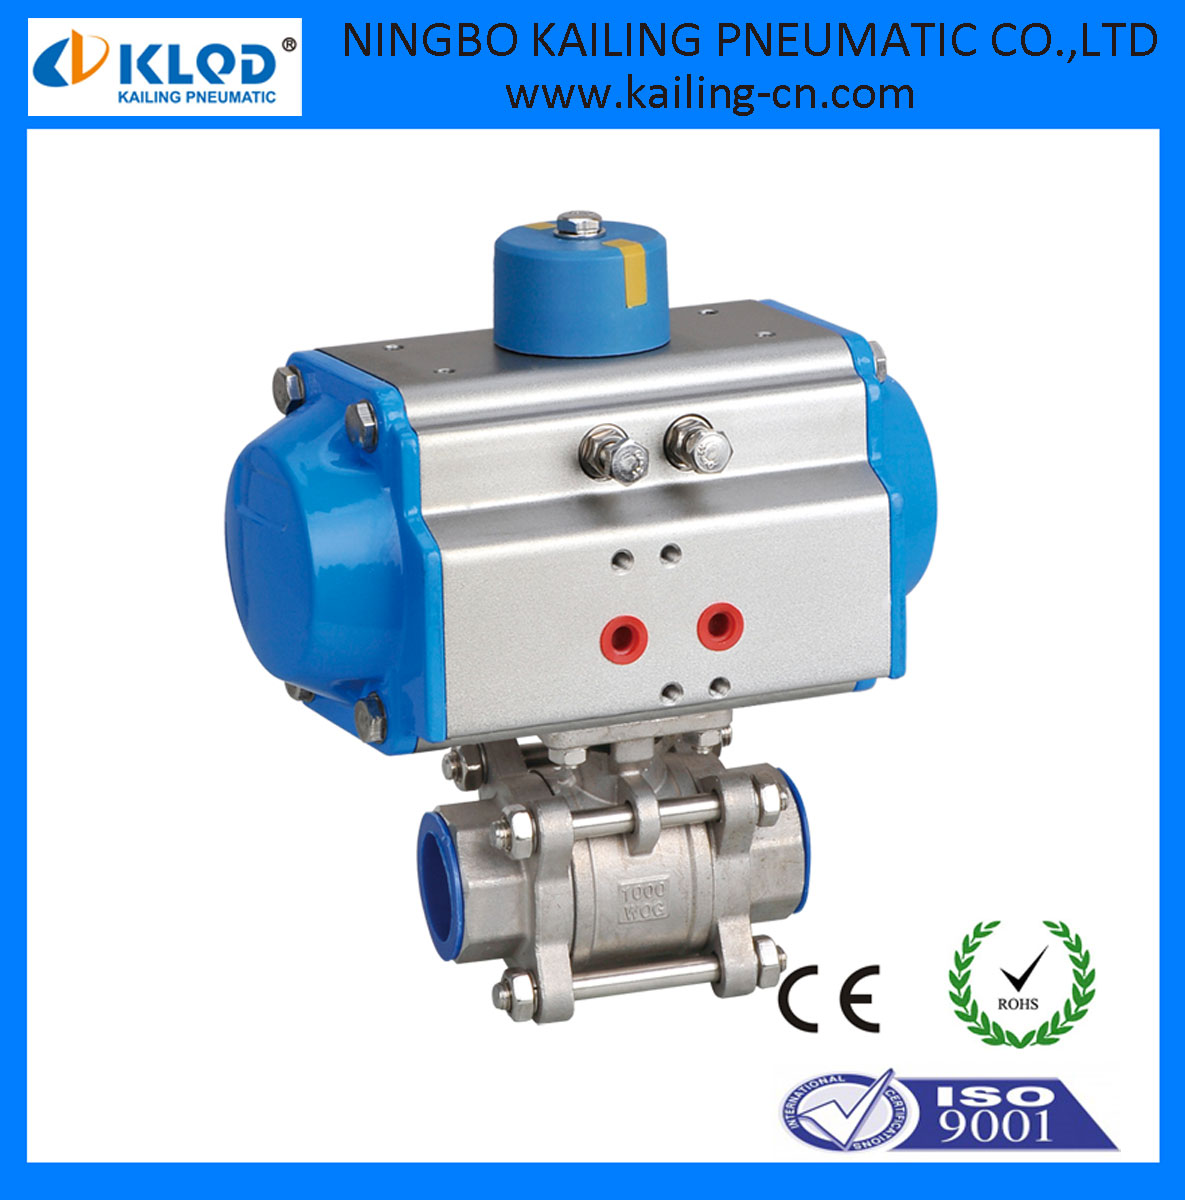 Pneumatic Air Actuated High Pressure Ball Valve Actuator Dn125 ...